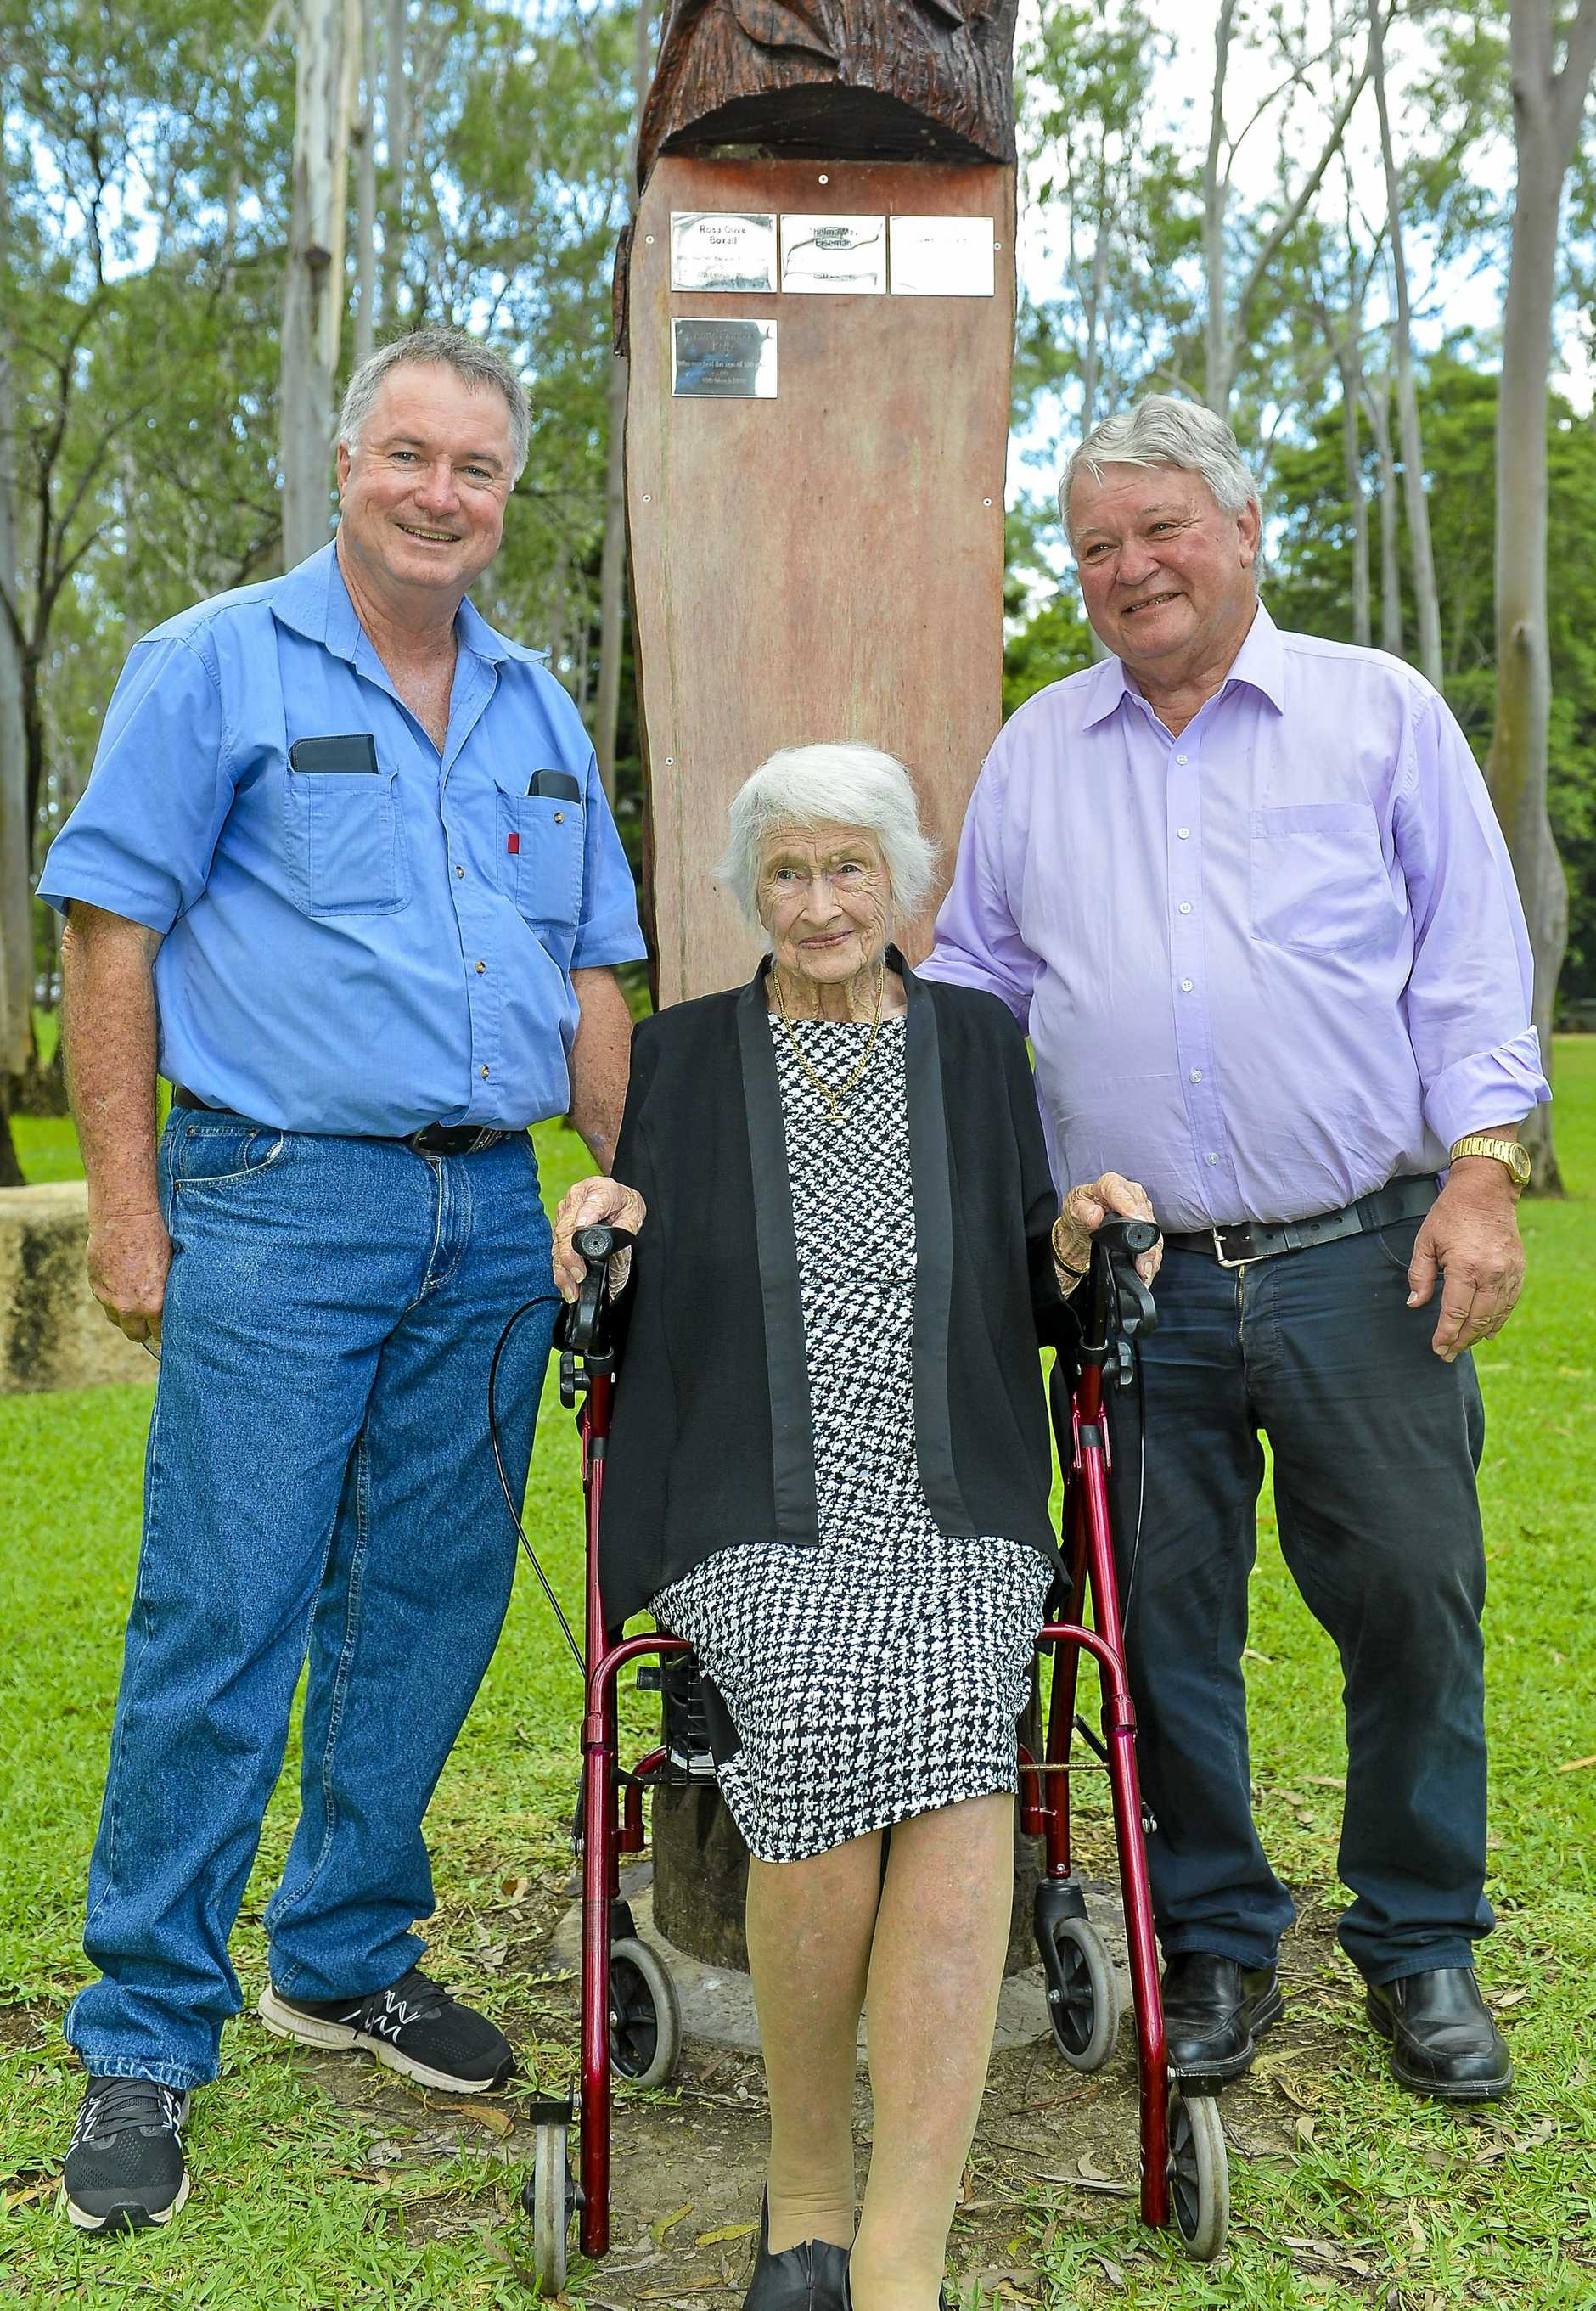 Centenarians Pat Kelly had a plaque unveiled in her honour at a tree planting ceremony at Tondoon Botanic Gardens.